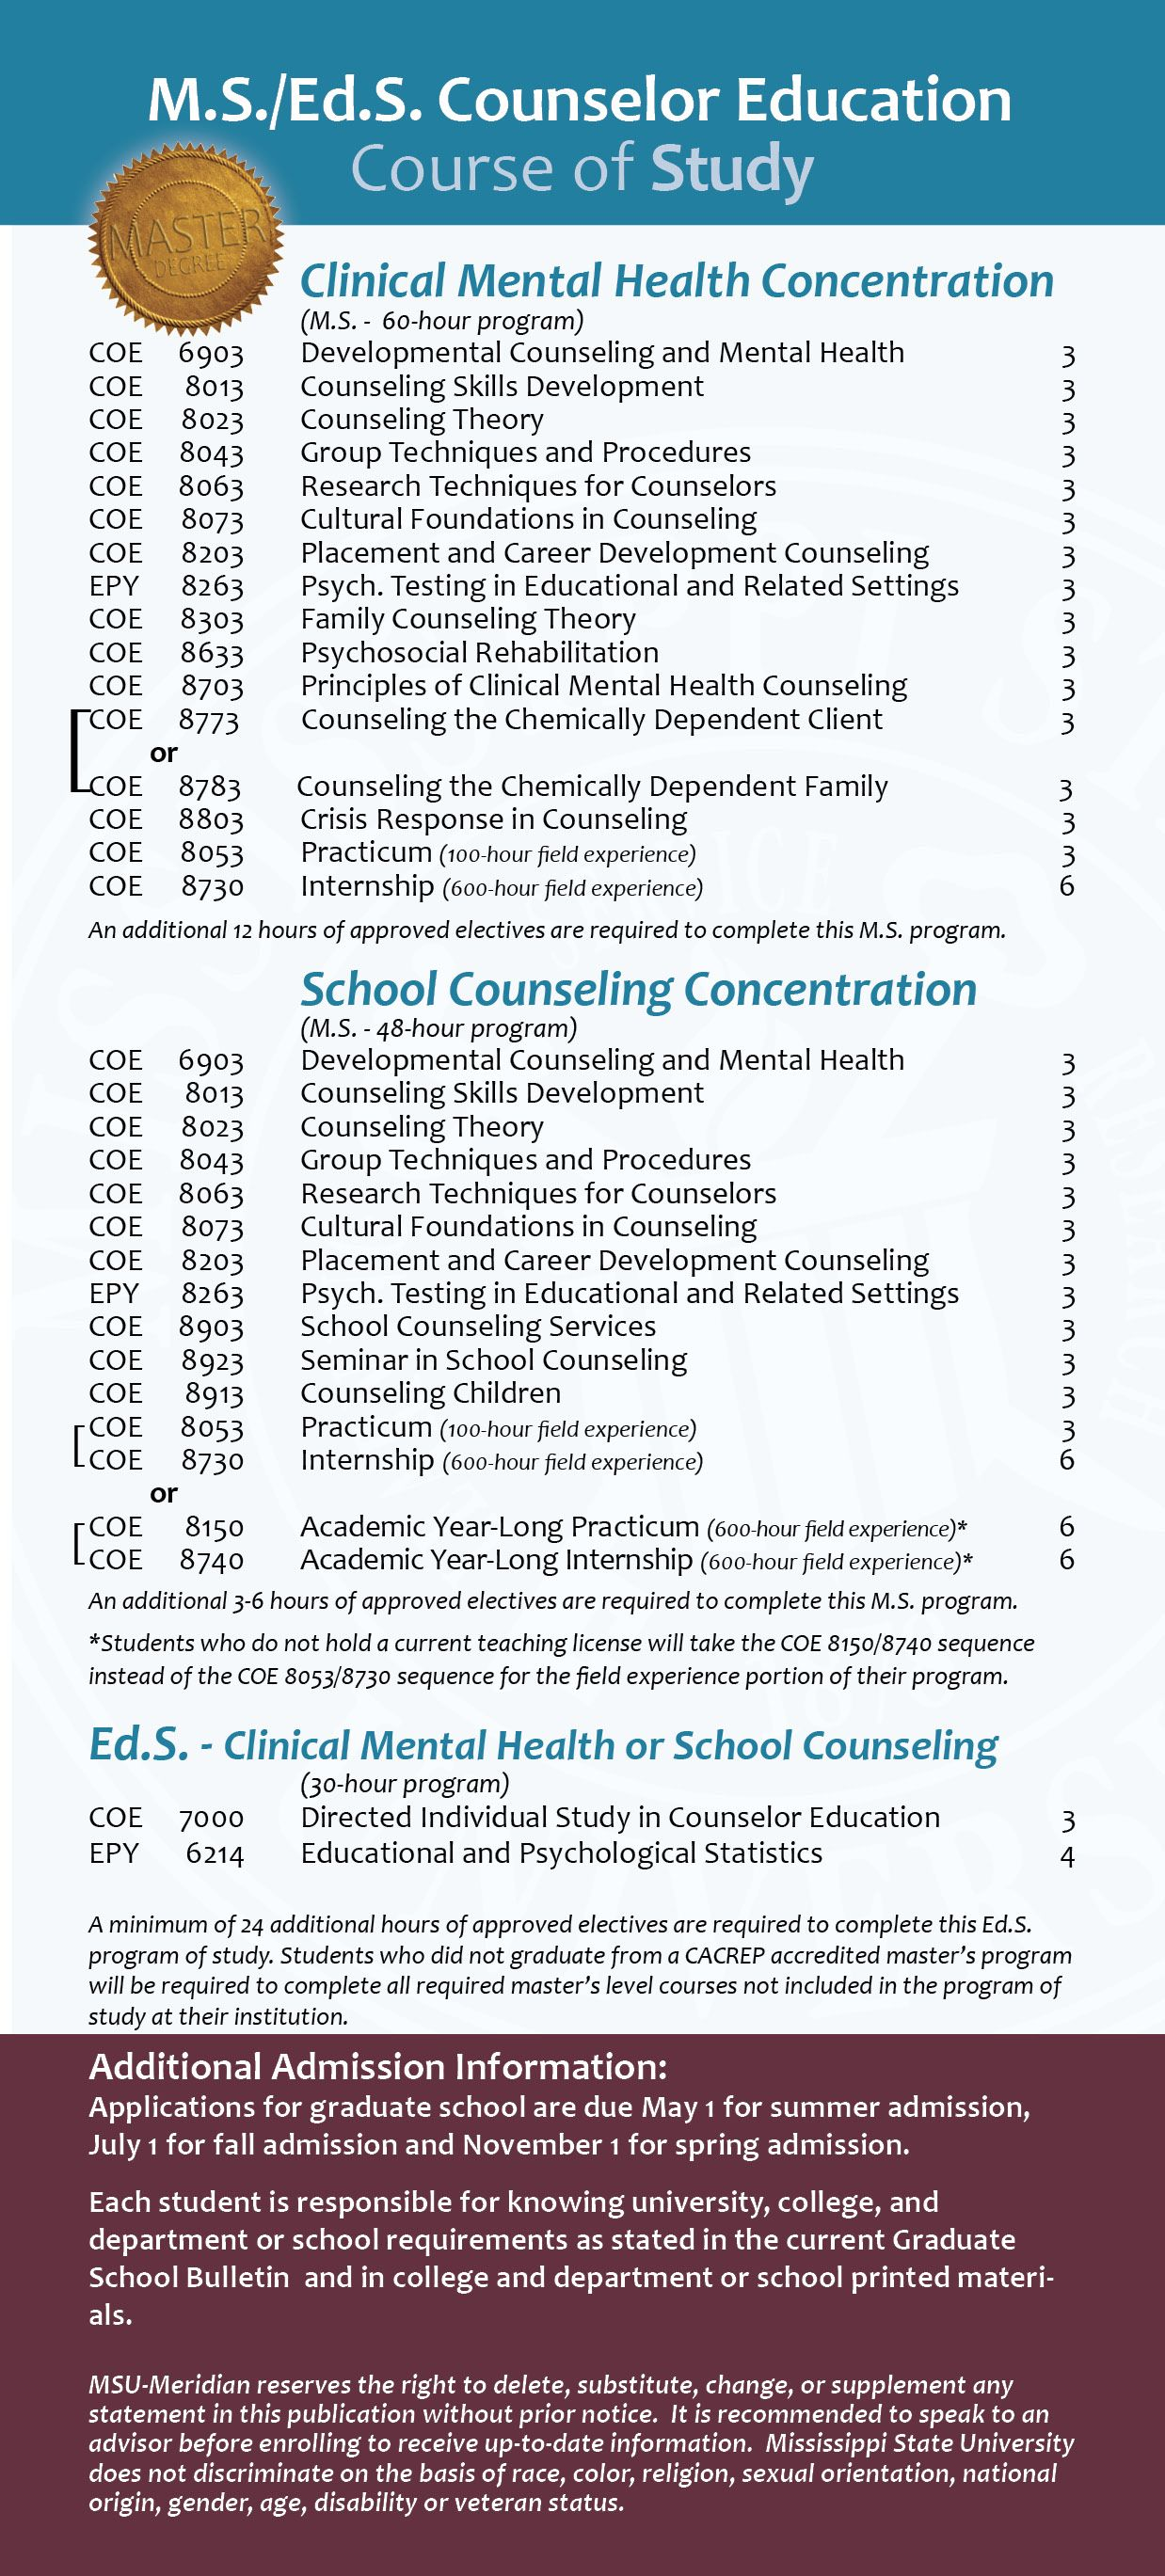 Pin on counseling